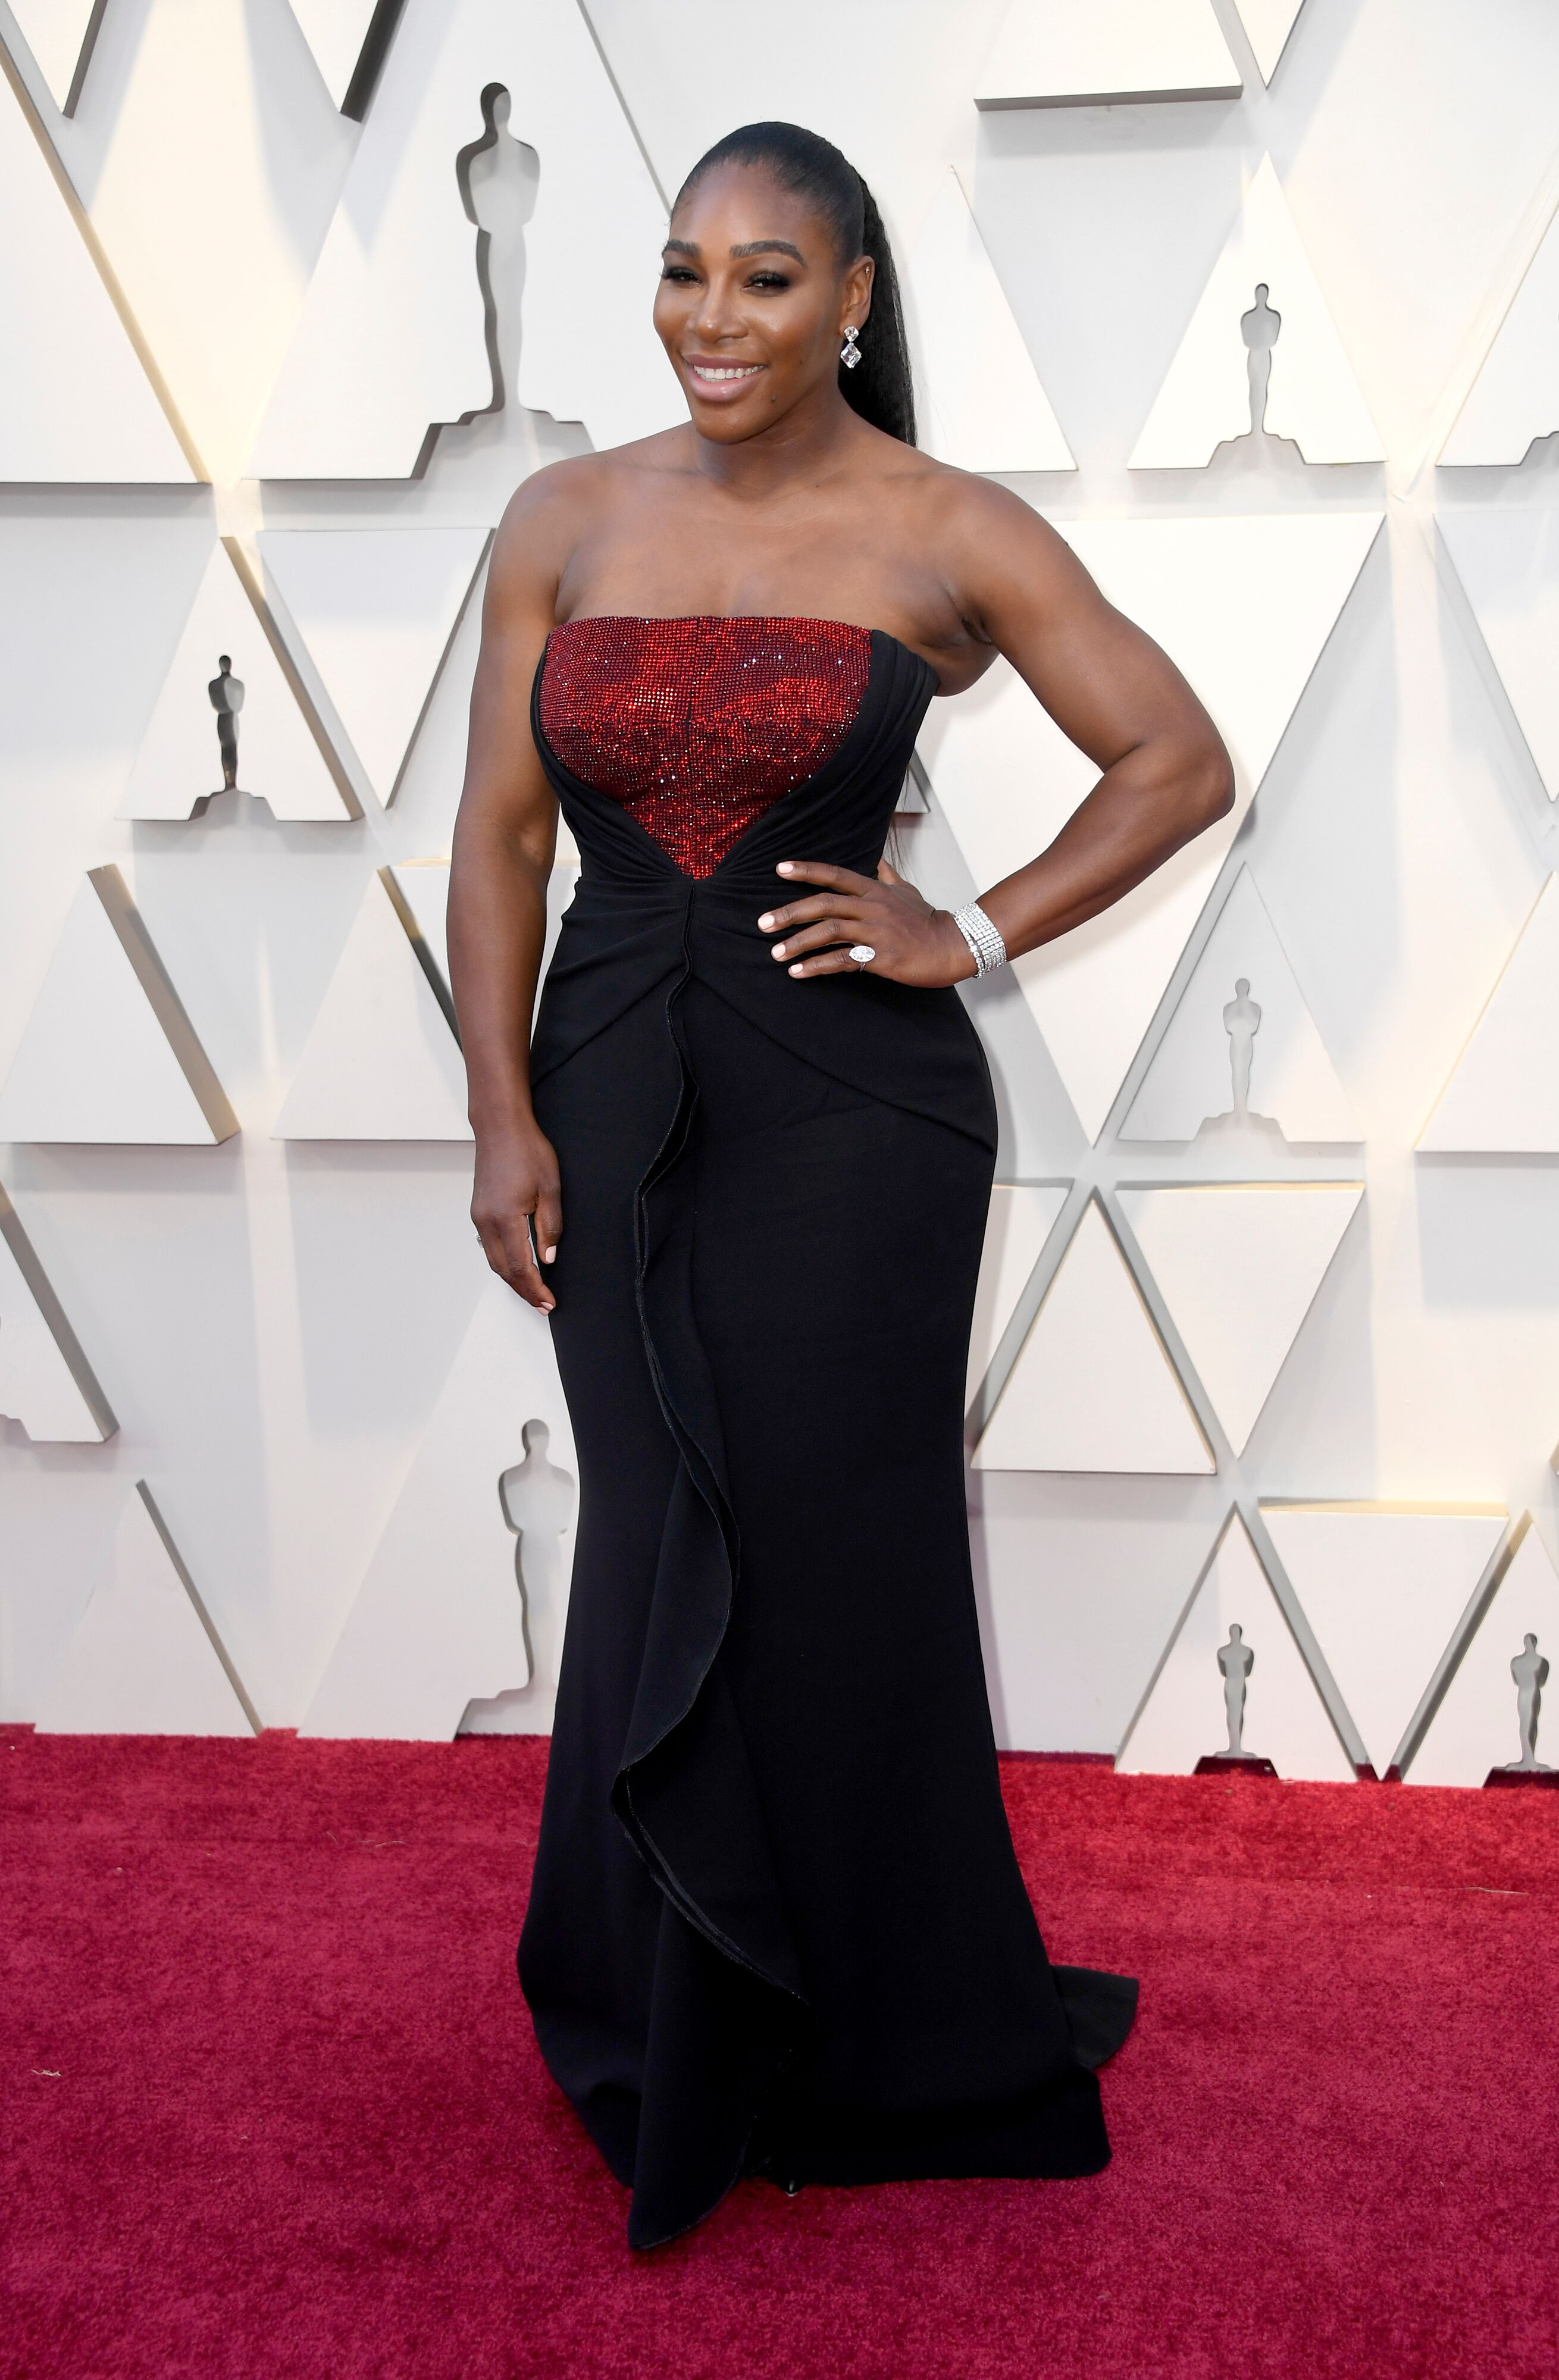 Serena Williams at the Academy Awards/ Source: Getty Images